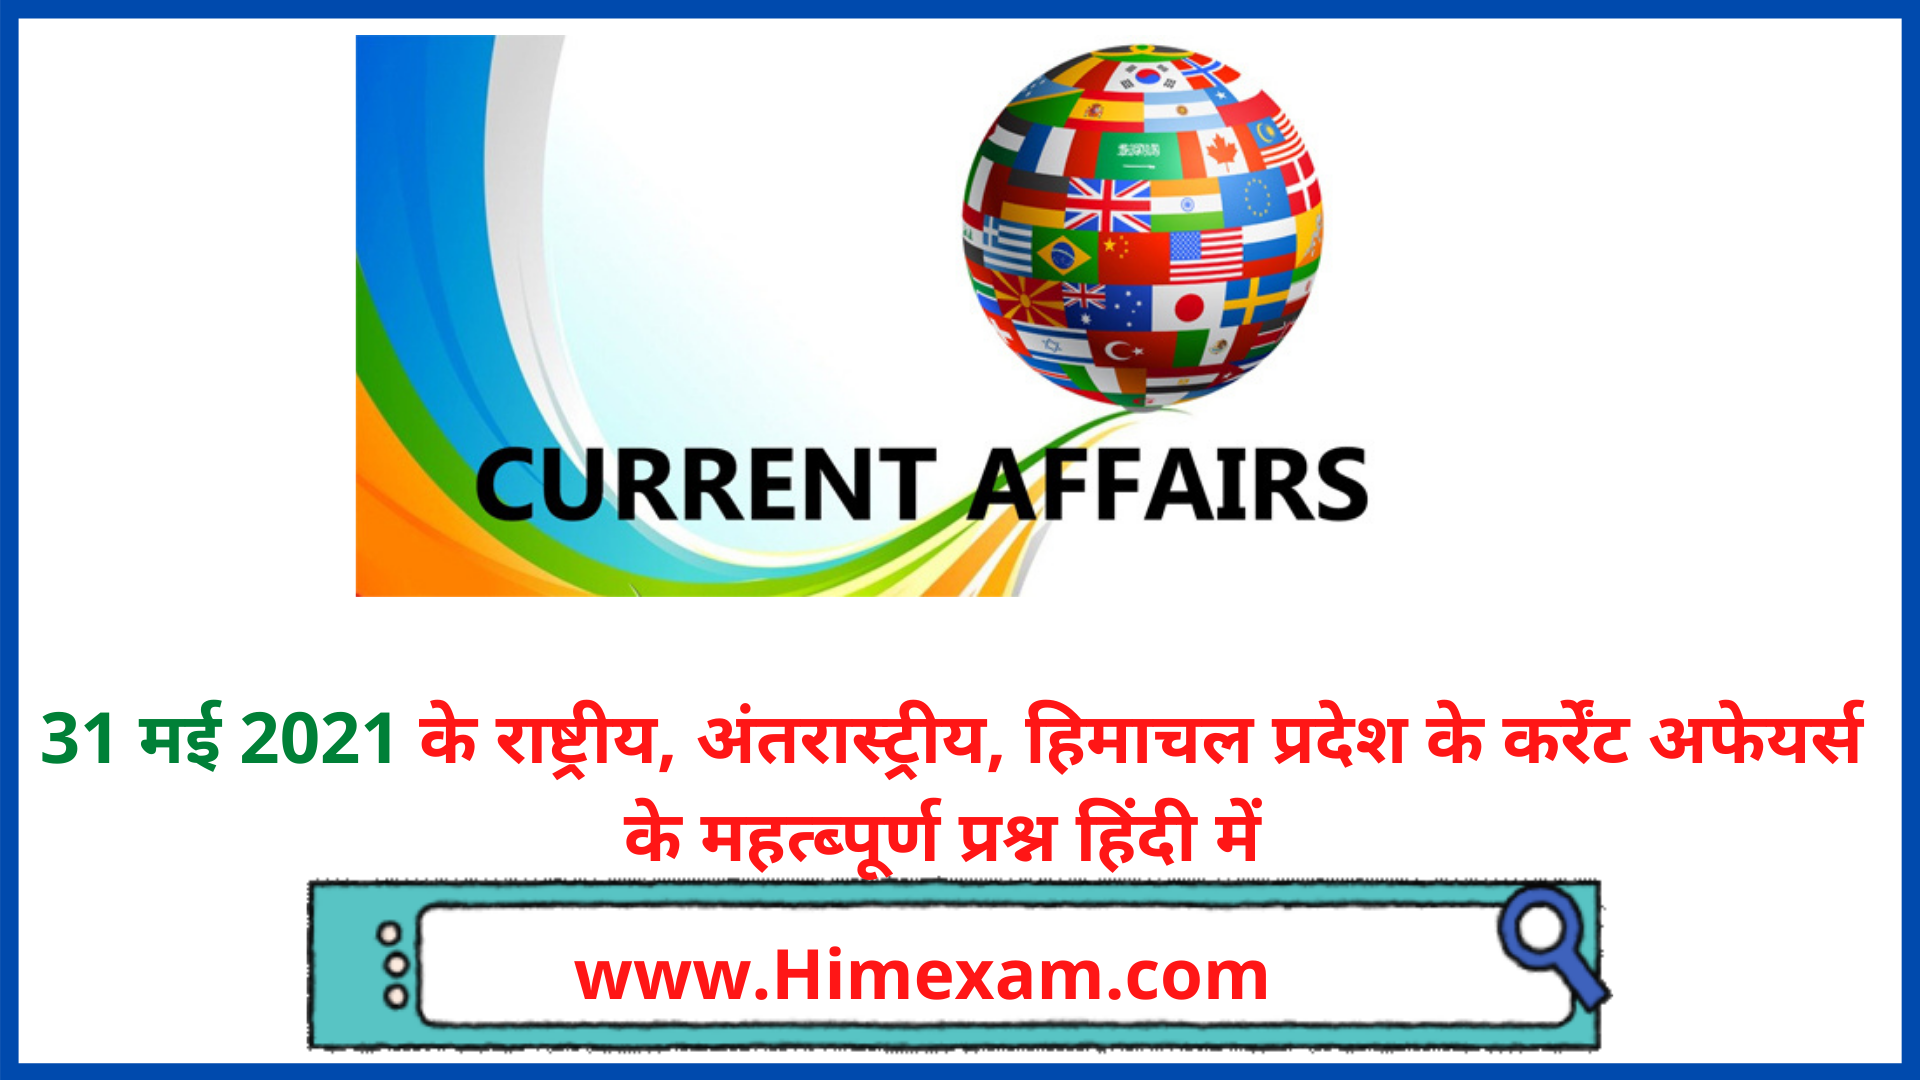 Daily Current Affairs 31 May 2021 In Hindi